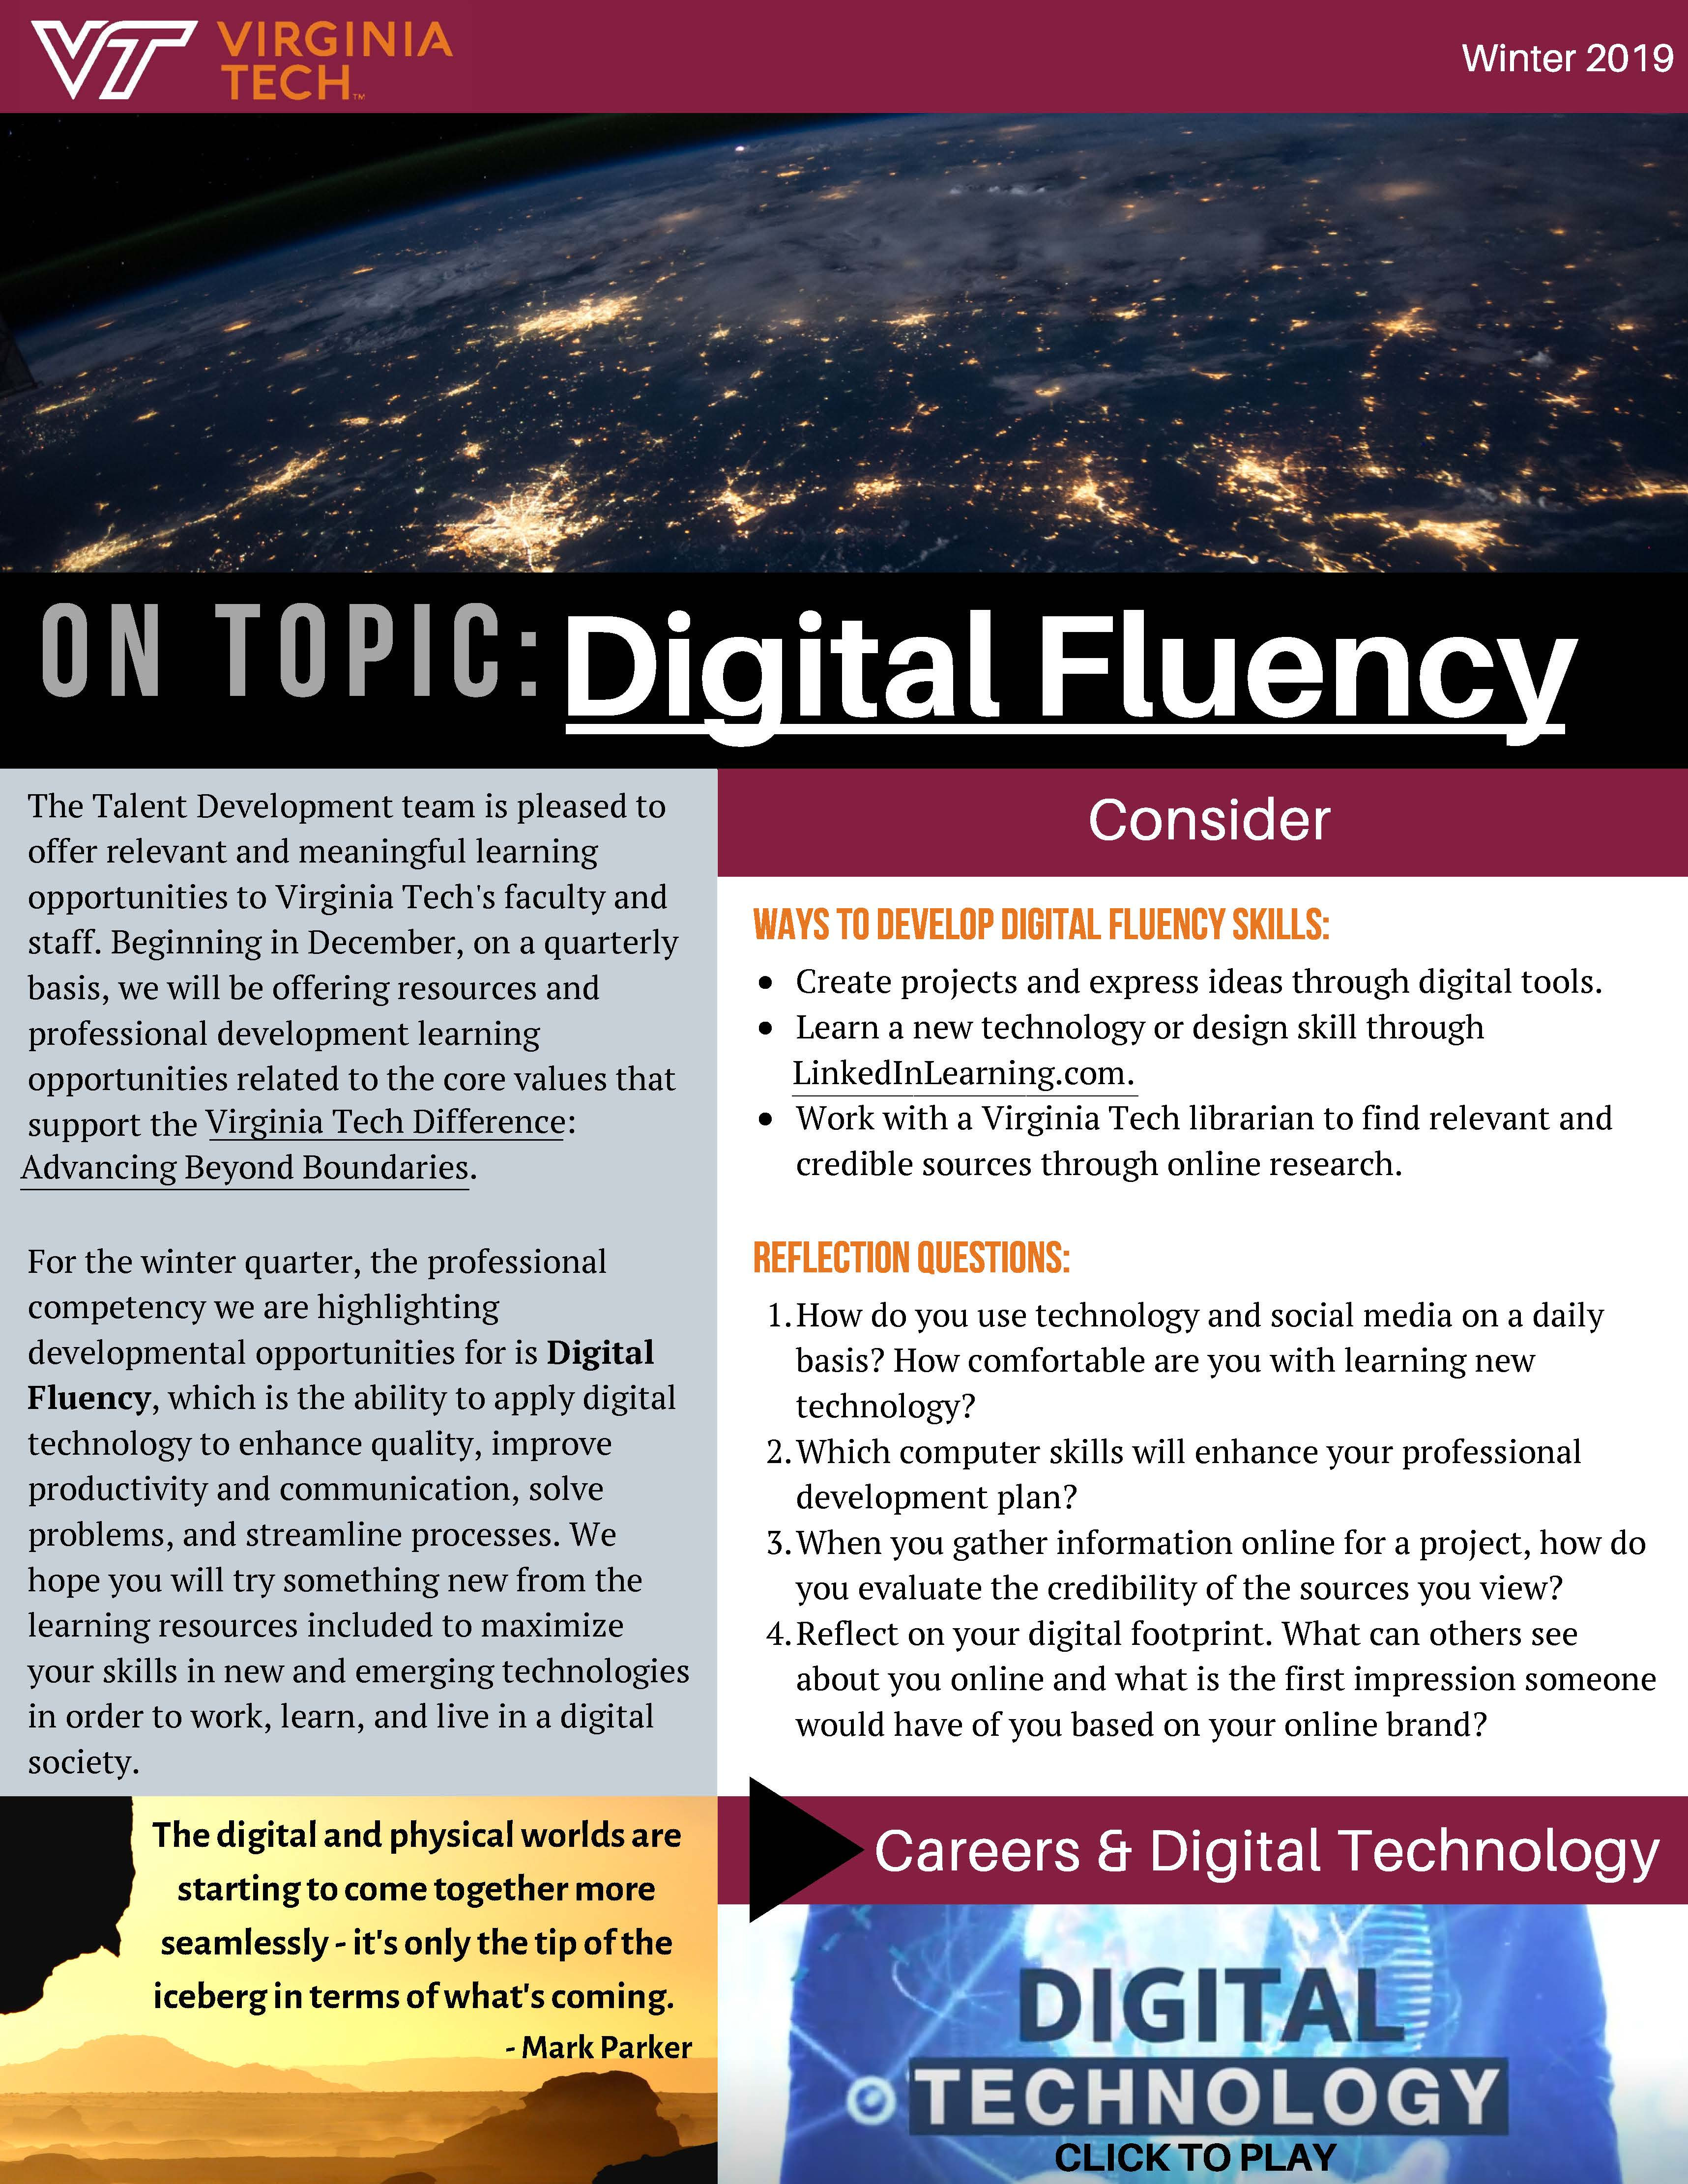 On Topic: Digital Fluency